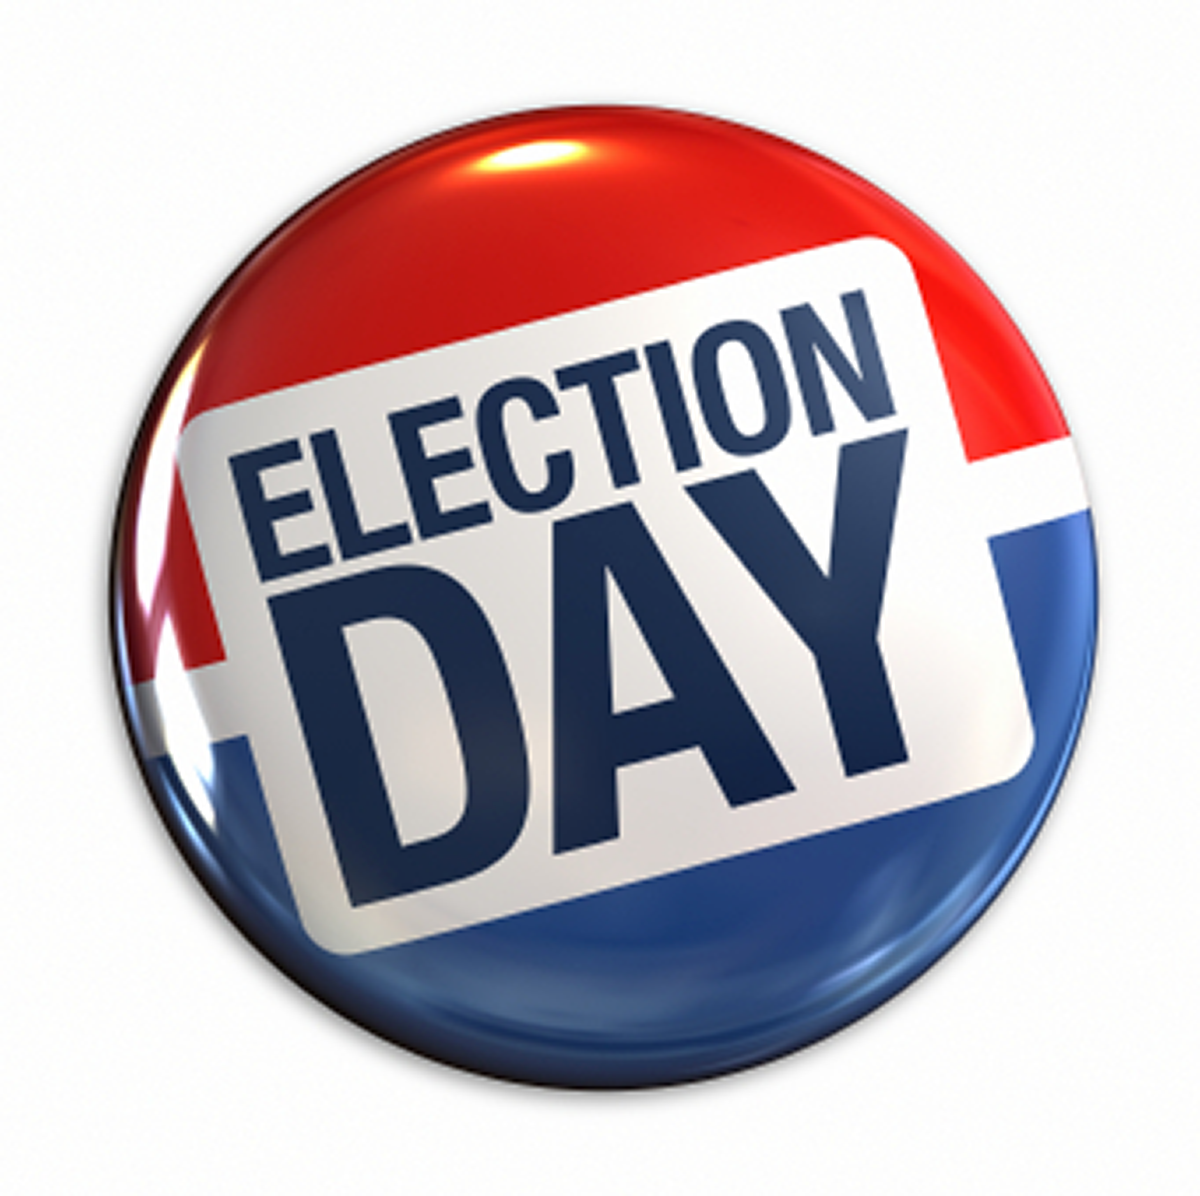 Election day button clipart